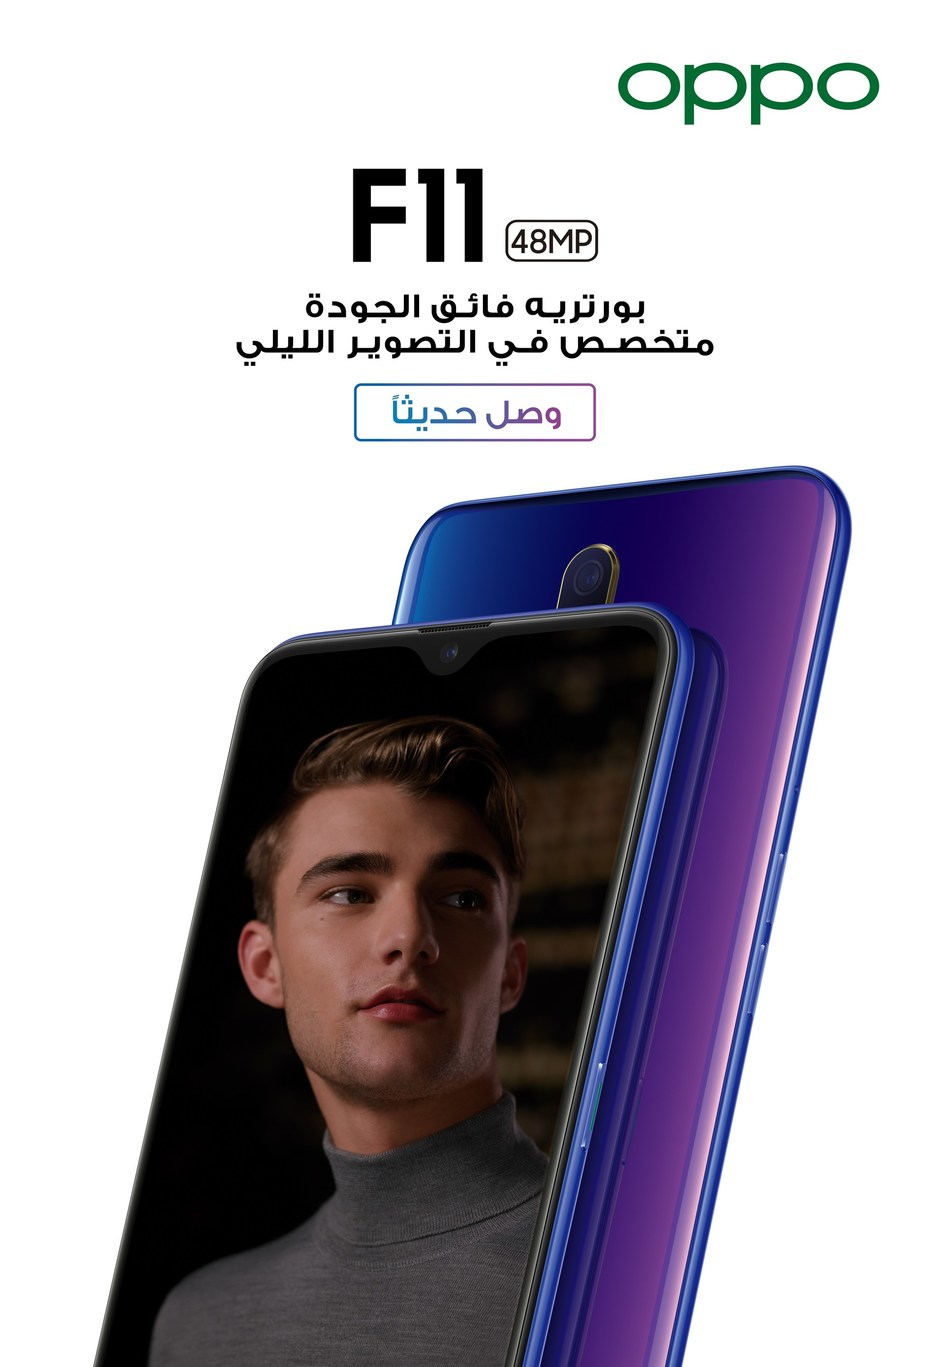 OPPO launches F11 in the UAE